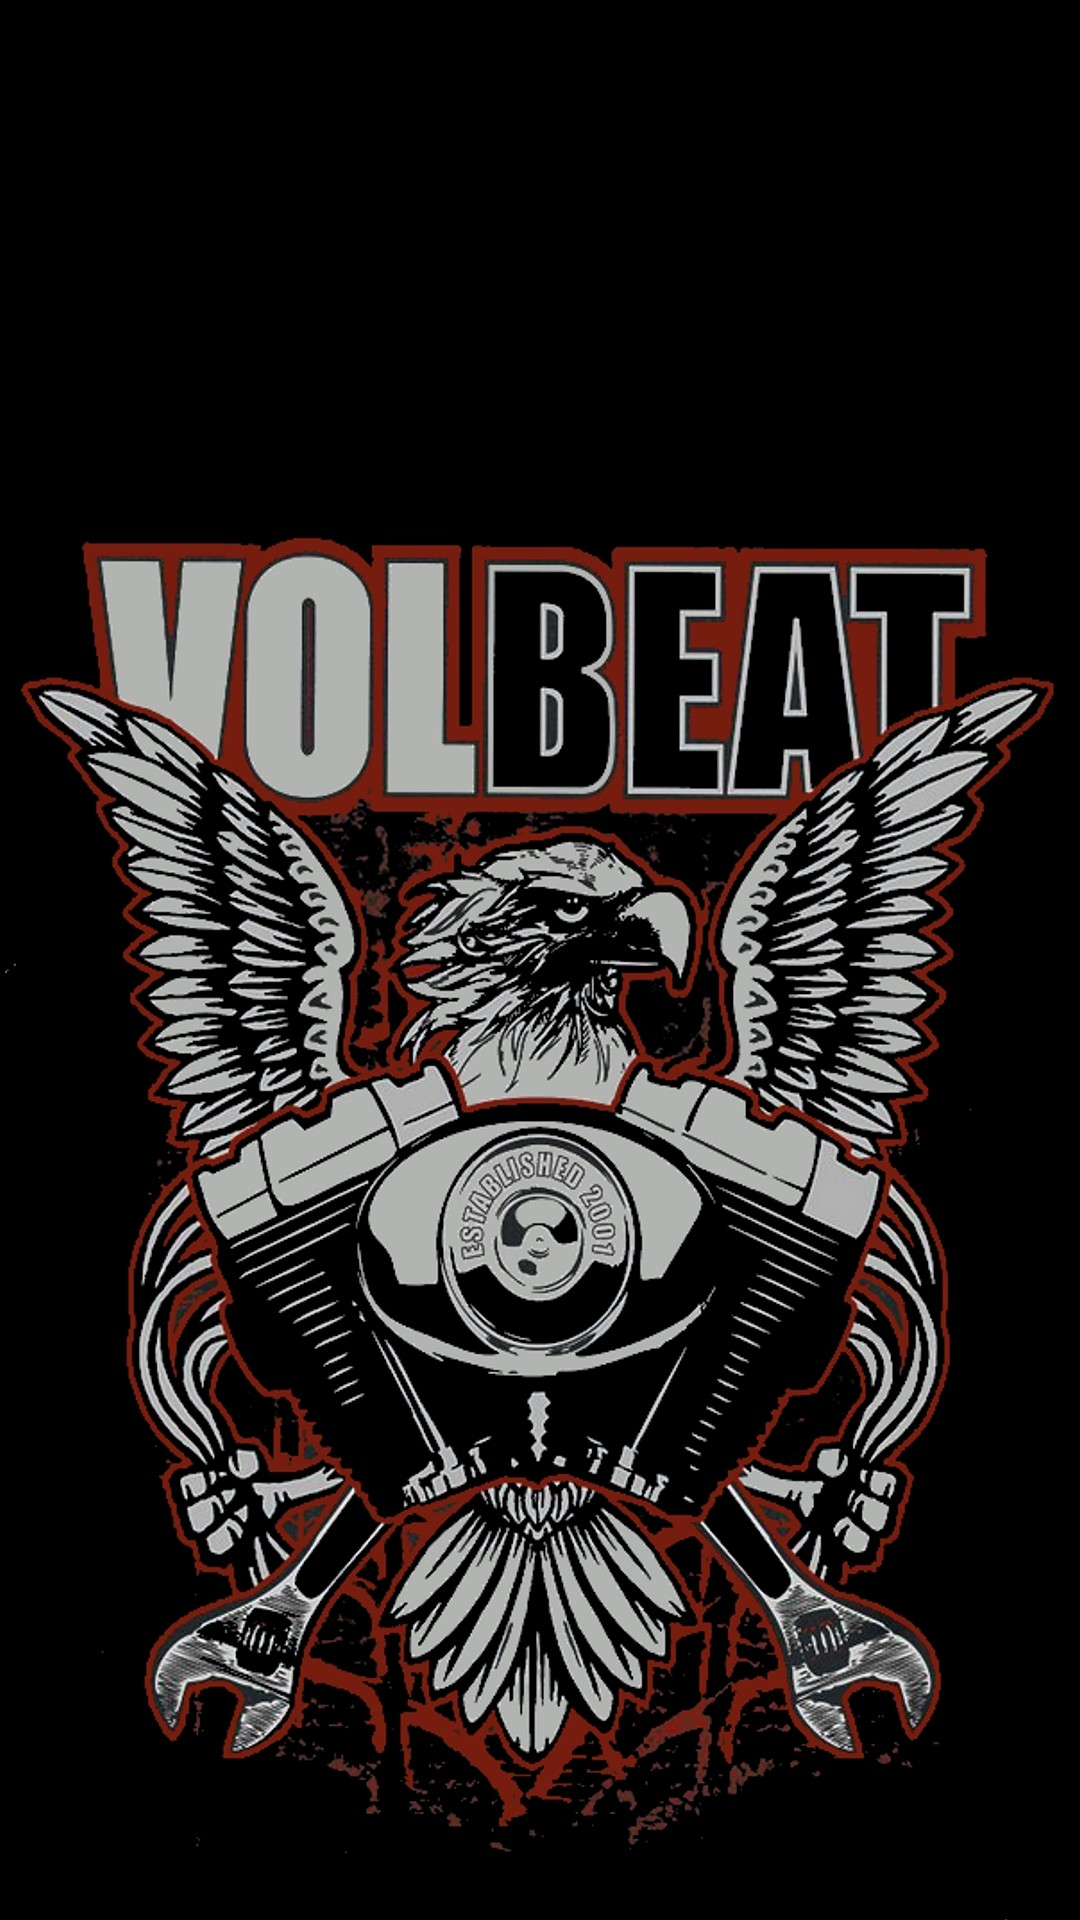 How To Get A Live Wallpaper On Iphone X Volbeat Wallpapers 66 Images